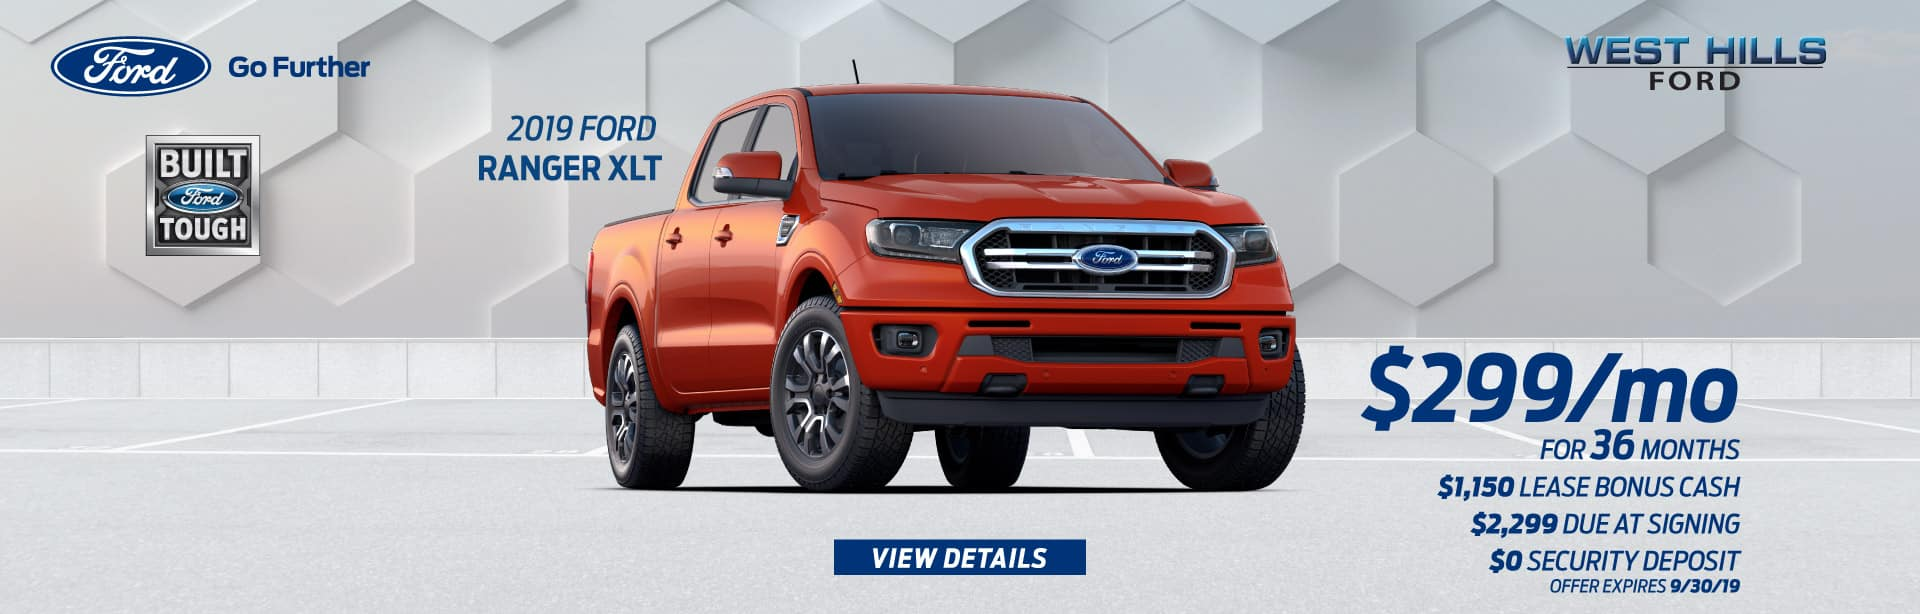 2019 Ford Ranger XLT (featured vehicle)  $299/mo. for 36 mos.* $2,299 Due at Signing  $1,150 Lease Bonus Cash   *  Offer valid on a 2019 Ford Ranger XLT. Valid on VIN: 1FTER4FH2KLA57141. $299/month, 36-month lease, $1,150 Lease Bonus Cash, with $2,299 due at signing; includes a $595 acquisition fee. MSRP is $37,870. No security deposit required. Excludes taxes, title, and fees. 36 monthly payments required. Subject to credit approval. Not all lessees will qualify for lowest payment through participating lender. Residency restrictions apply. Lessee responsible for excess wear and mileage over 10,500/mi/yr and .20 cents per extra mile. Option to purchase at lease end. A negotiable dealer documentary service fee of up to $150 may be added to the sale price or capitalized cost. Offer expires 9/30/19.